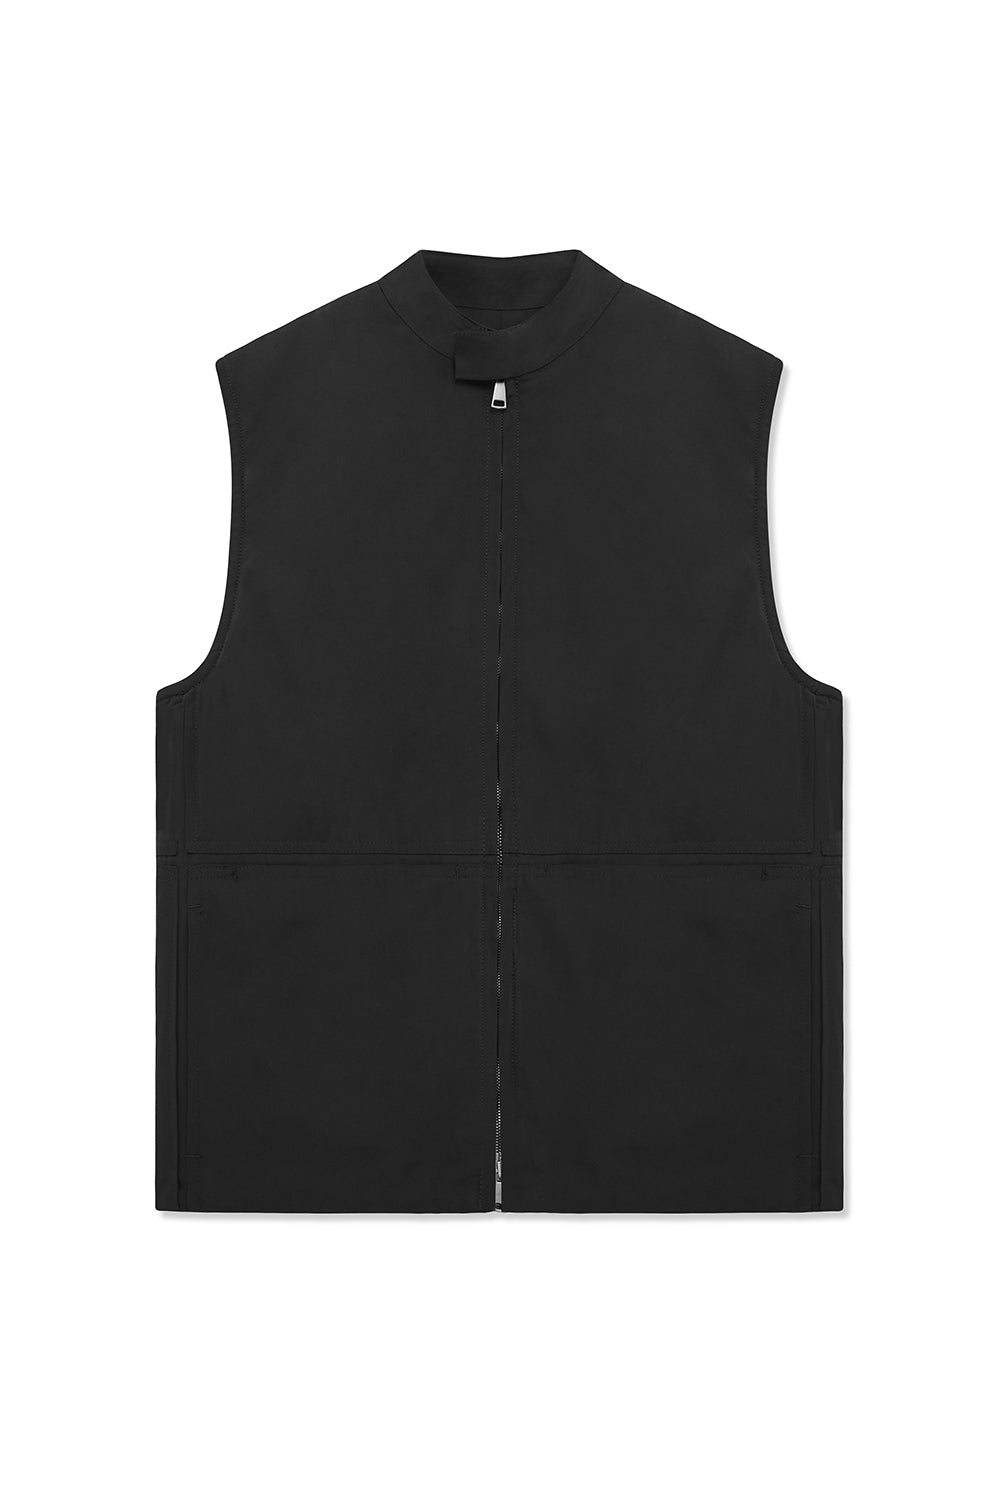 ABNUDI TECHNICAL TWILL GILET